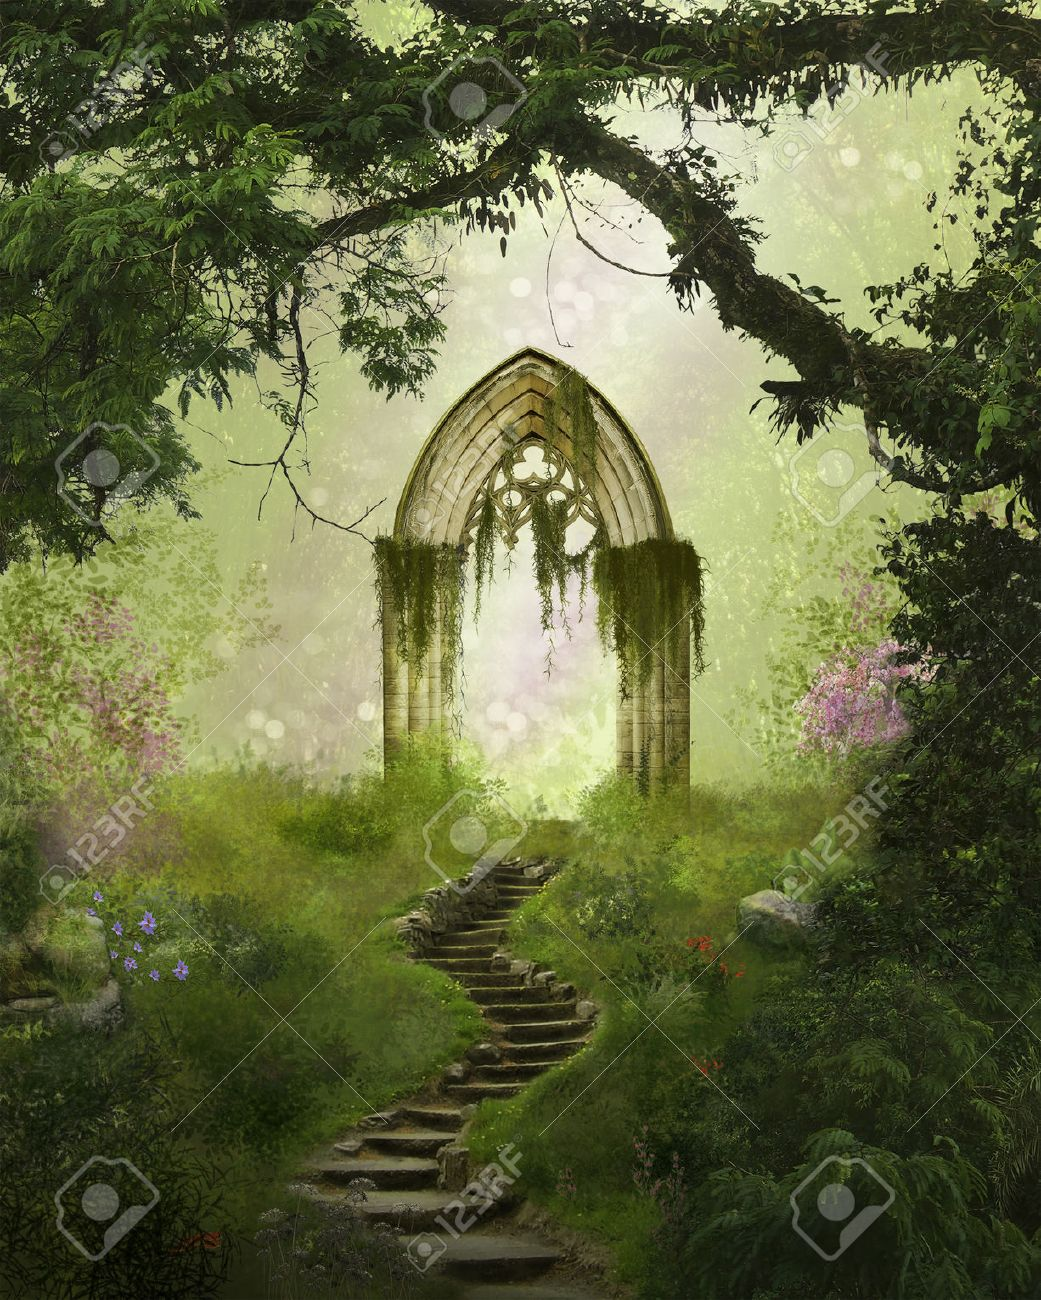 Fantasy antique gate in a beautiful forest - 63596951